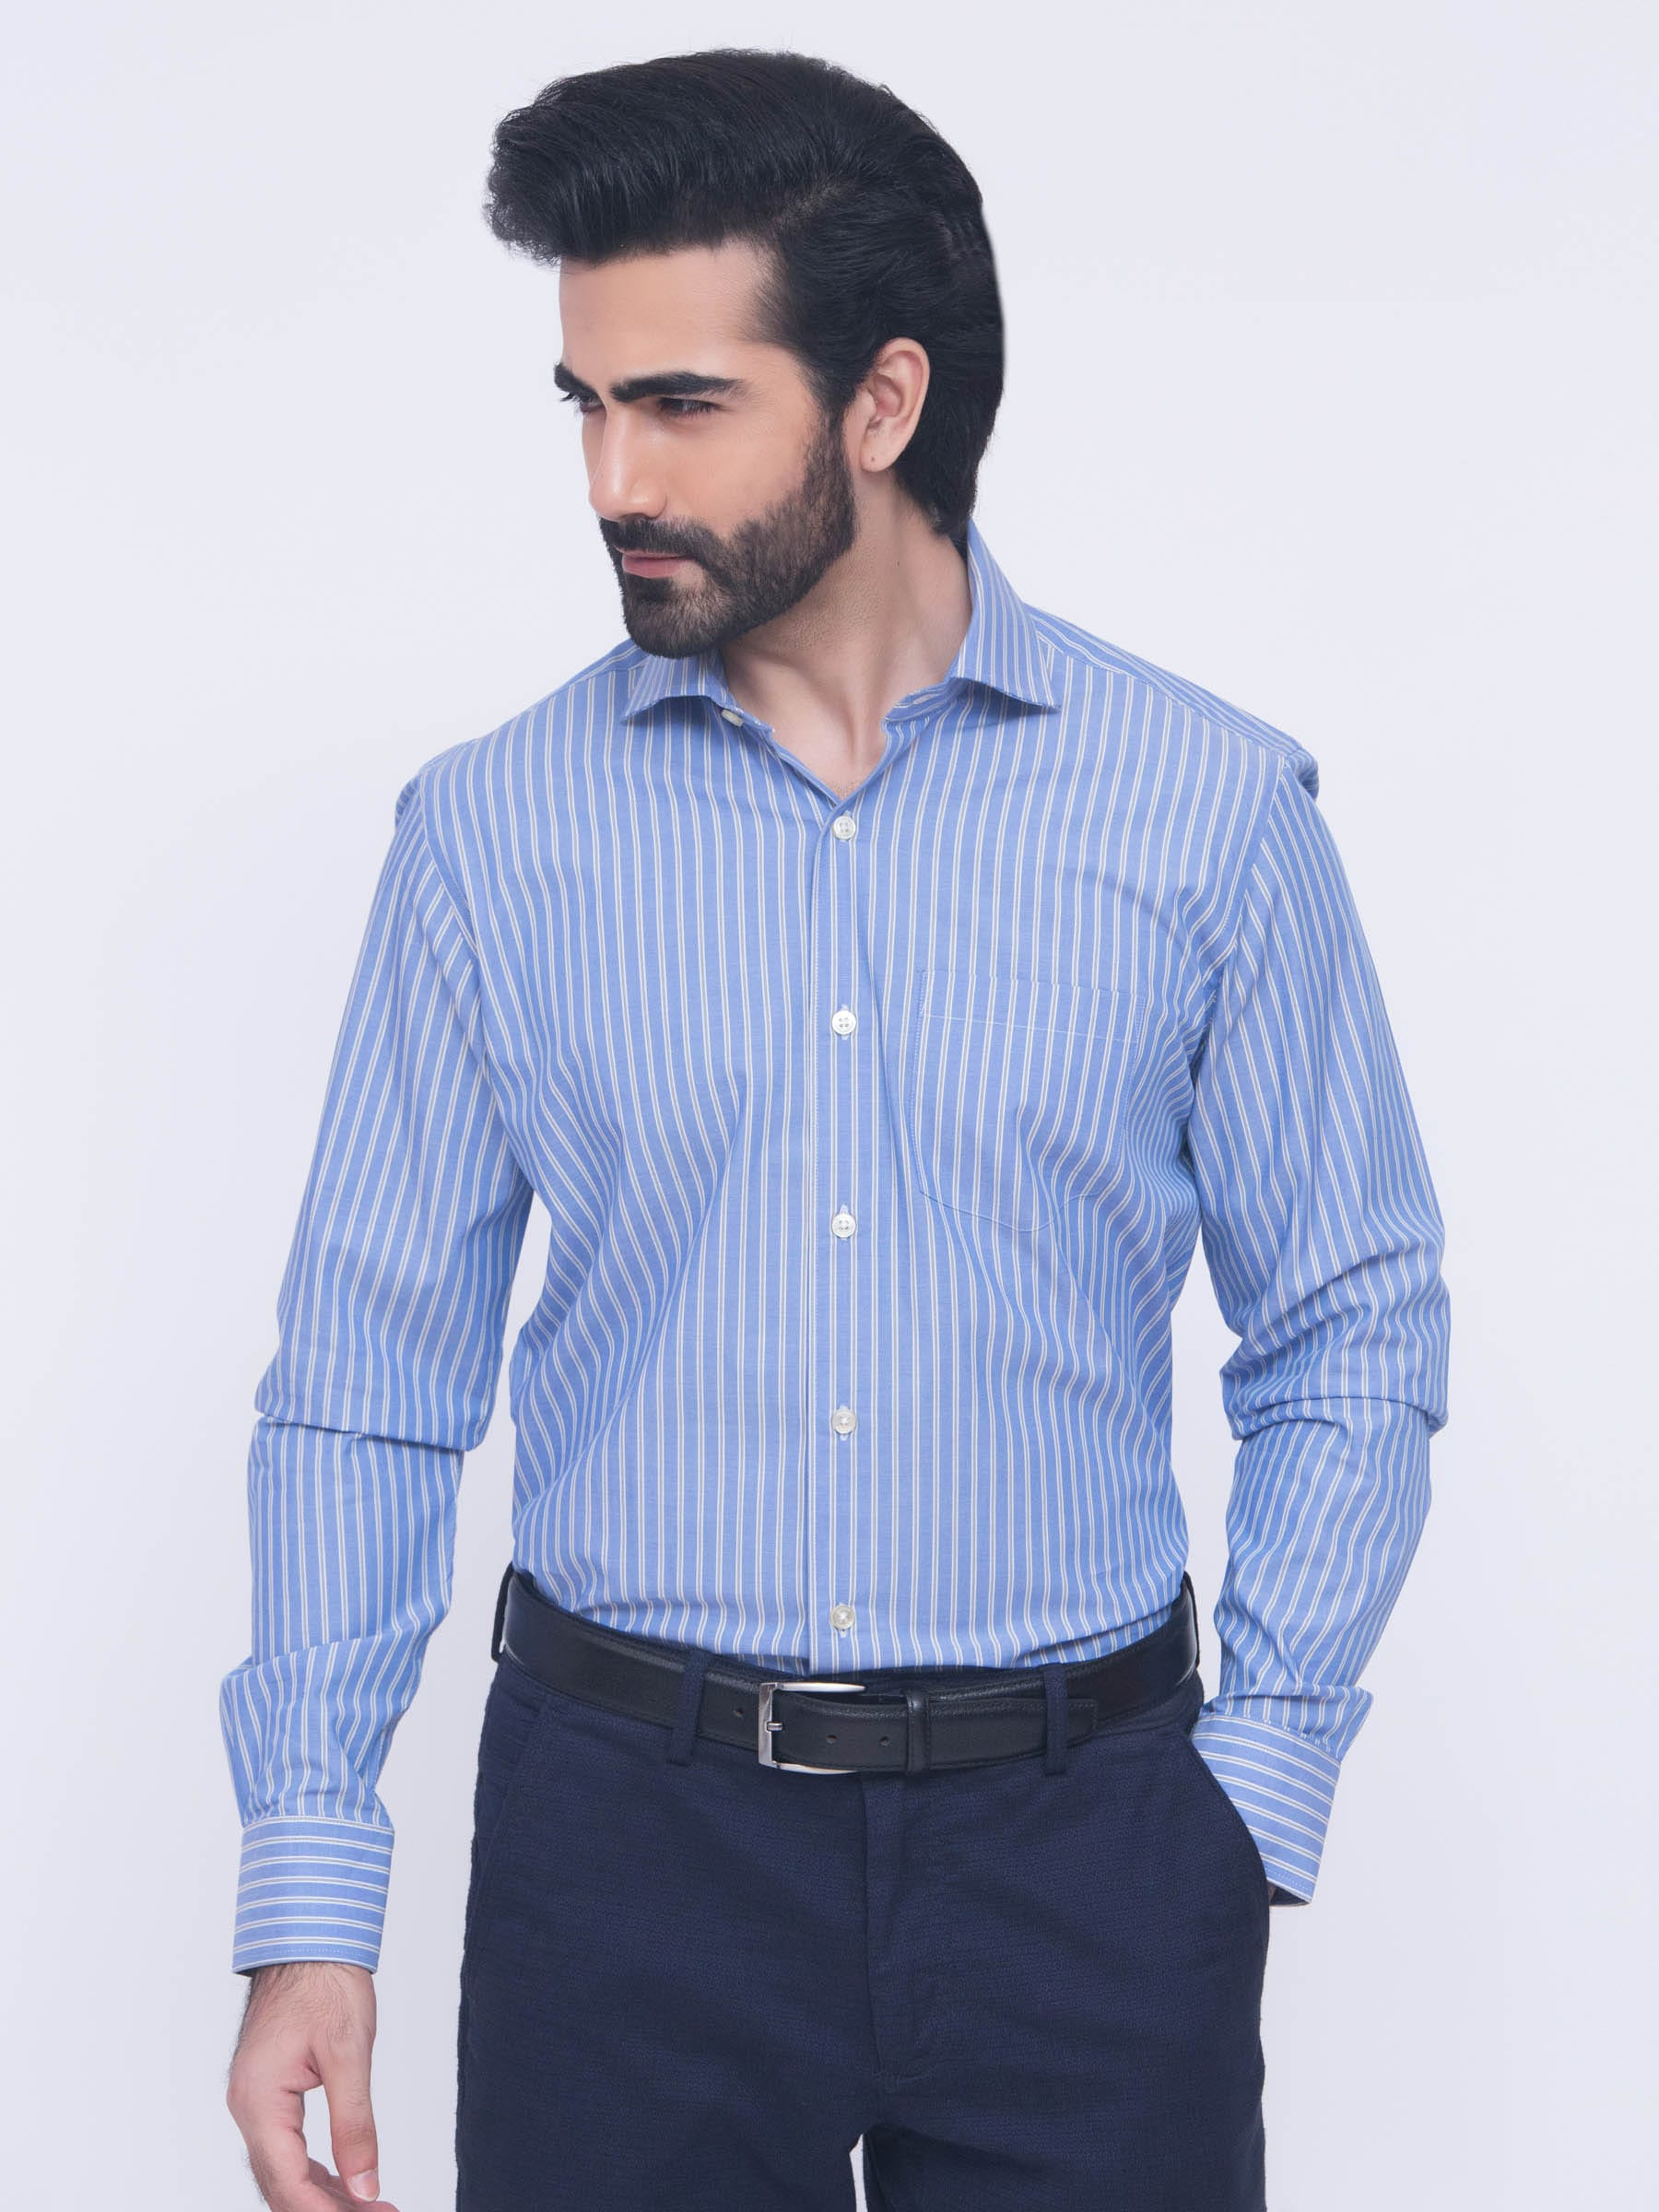 Spread Collars | Modena Cutaway Collar Dress Shirts | Cutaway Collar